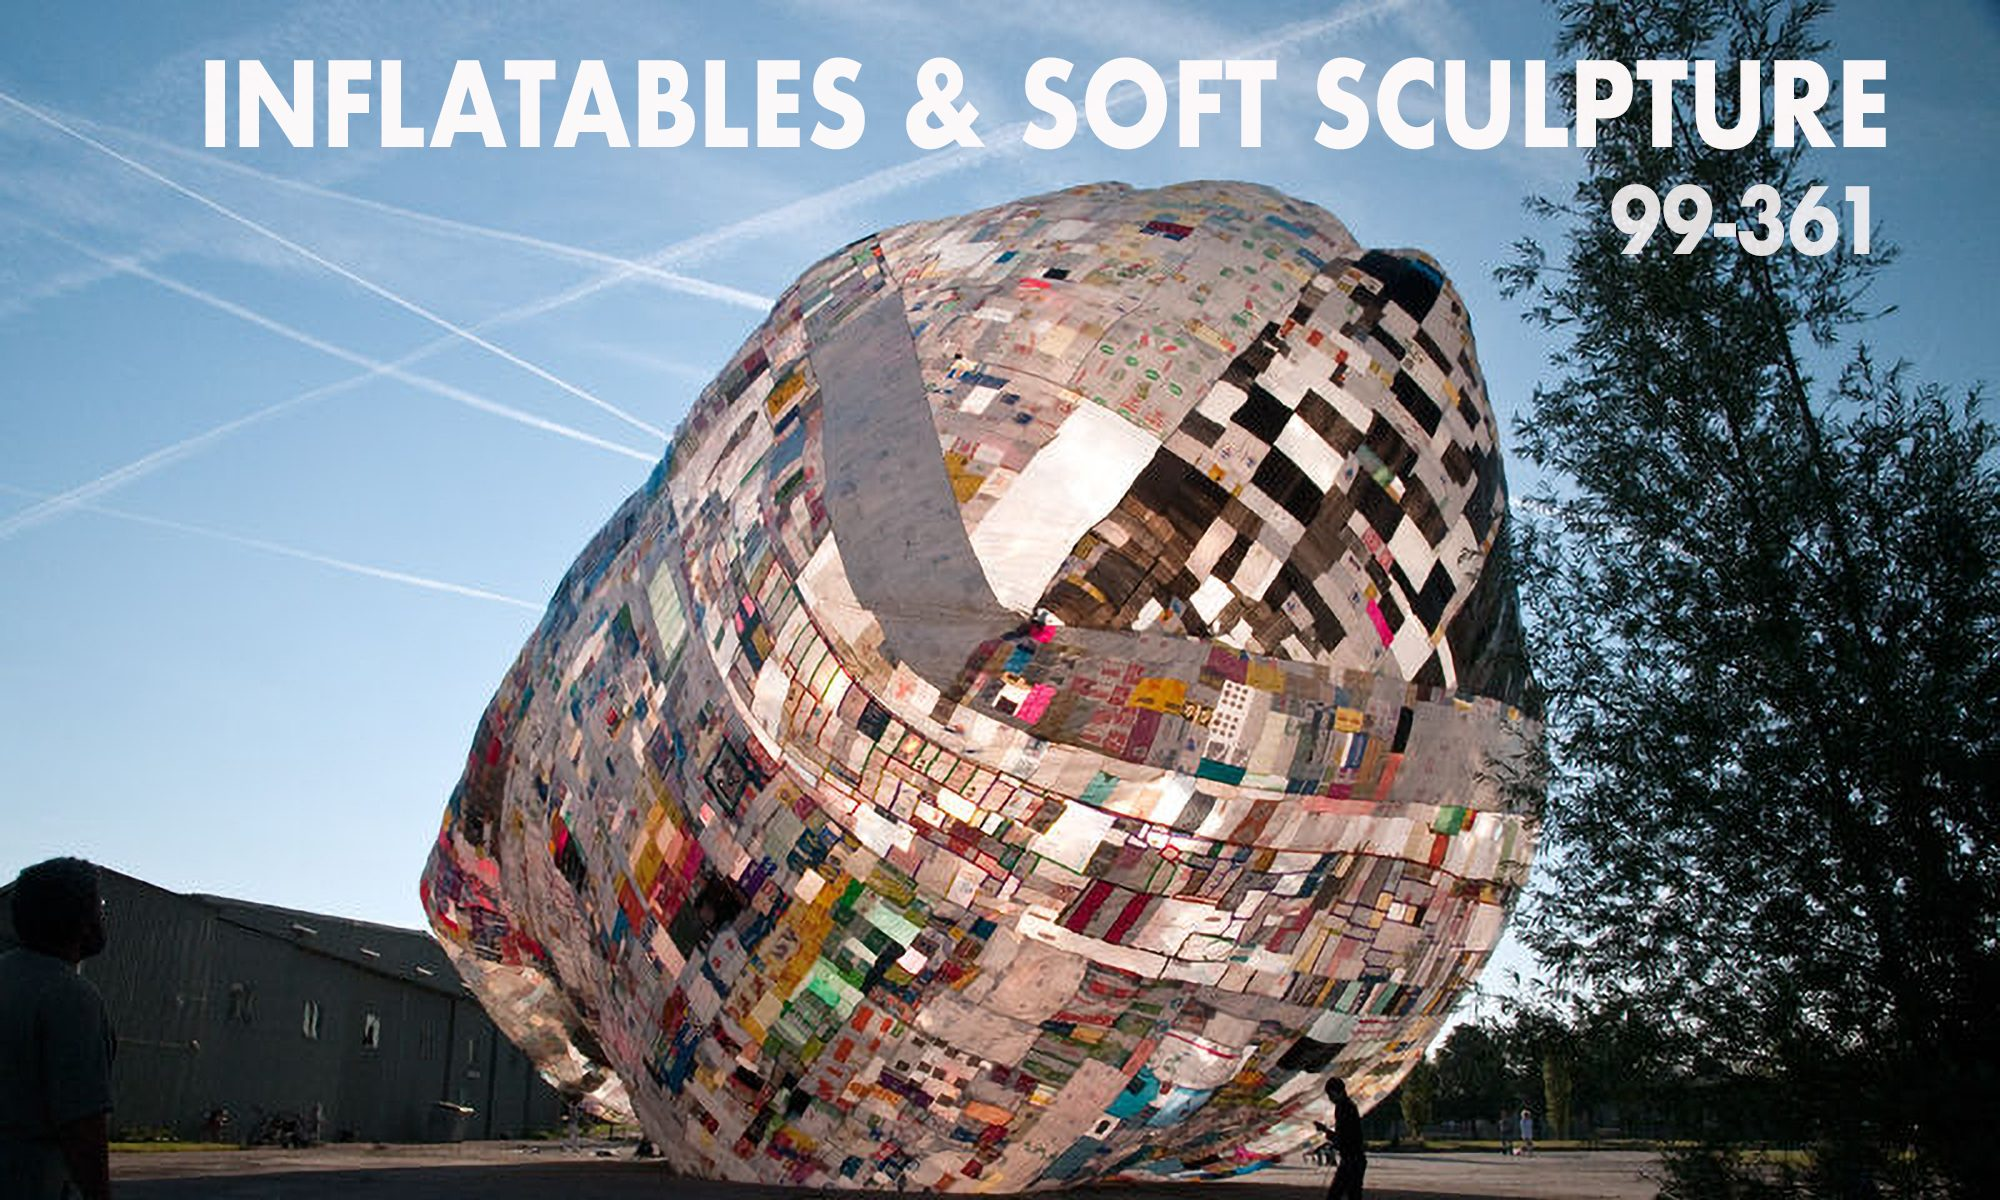 Inflatables and Soft Sculpture